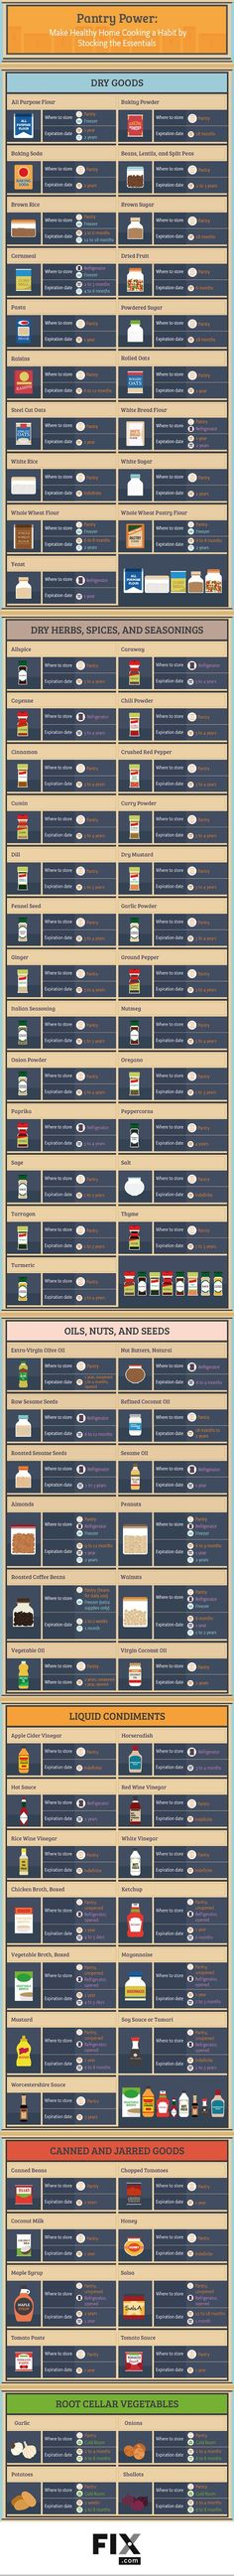 Pantry Power: Make Healthy Home Cooking a Habit by Stocking the Essentials #Infographic #Food